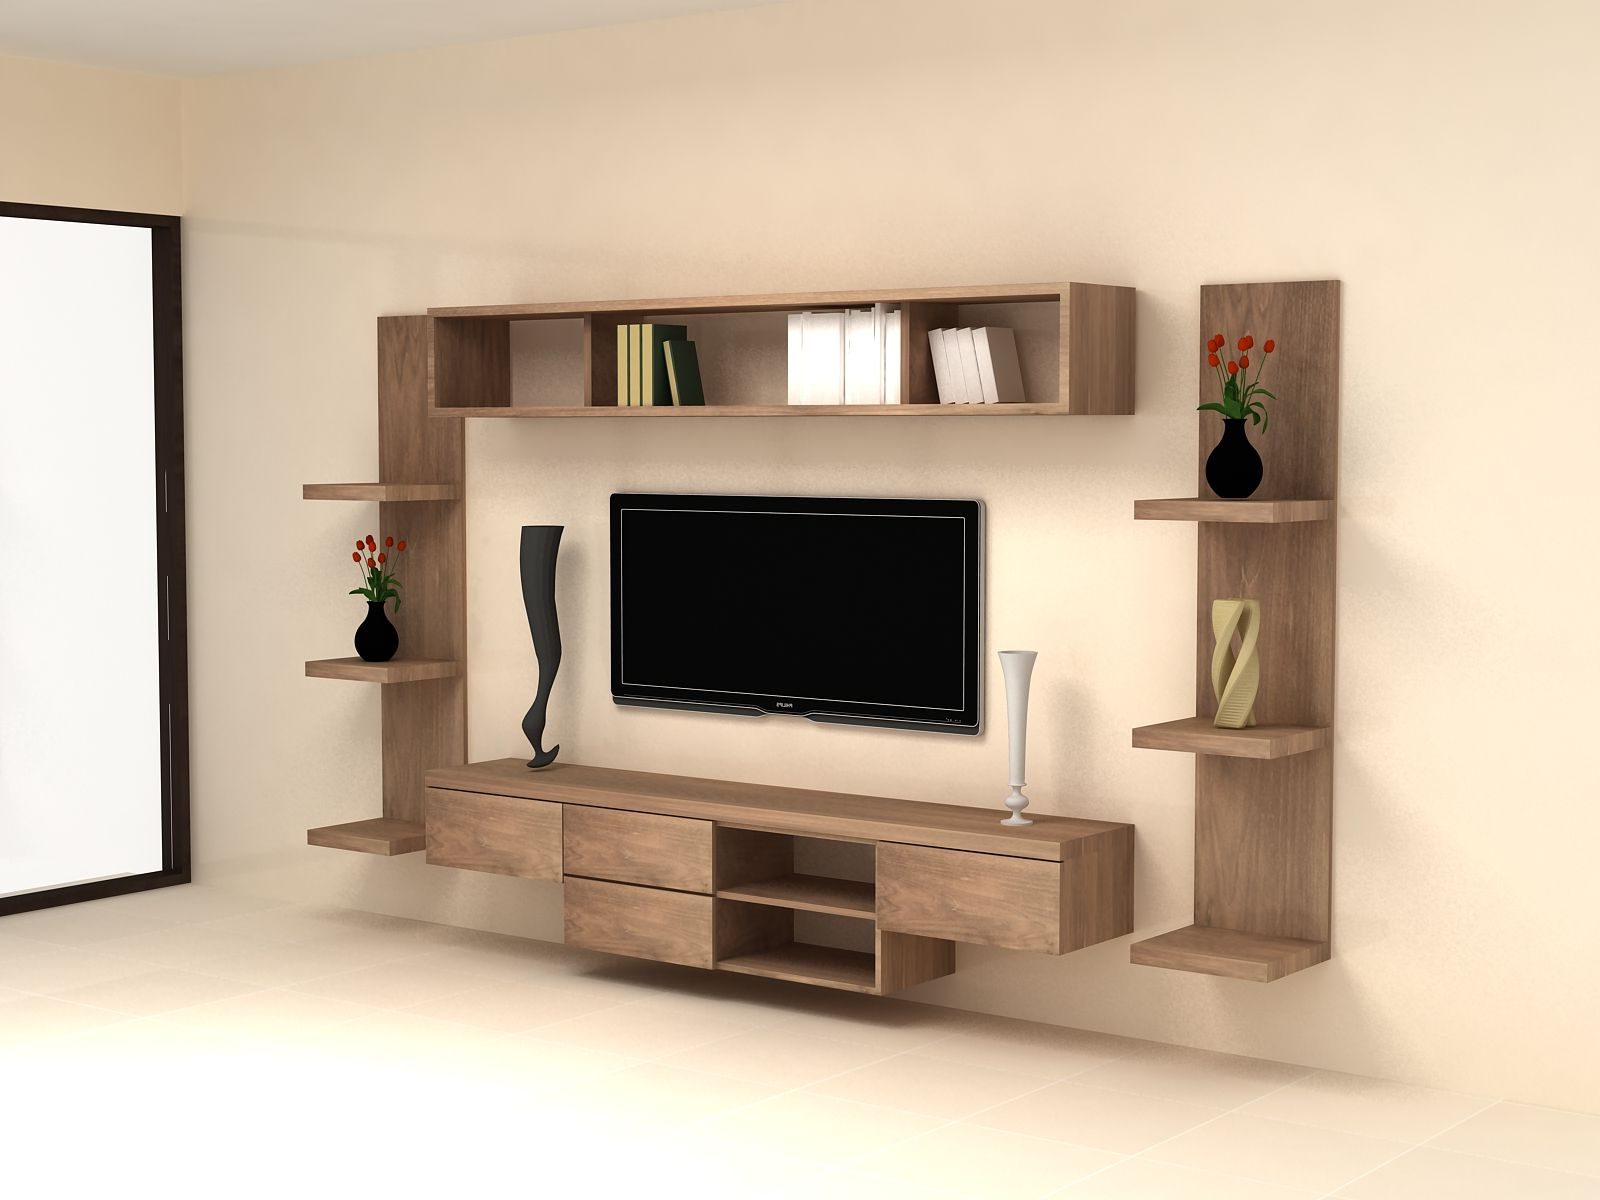 Most Popular Wall Hung Tv Cabinet 2 (Gallery 5 of 20)